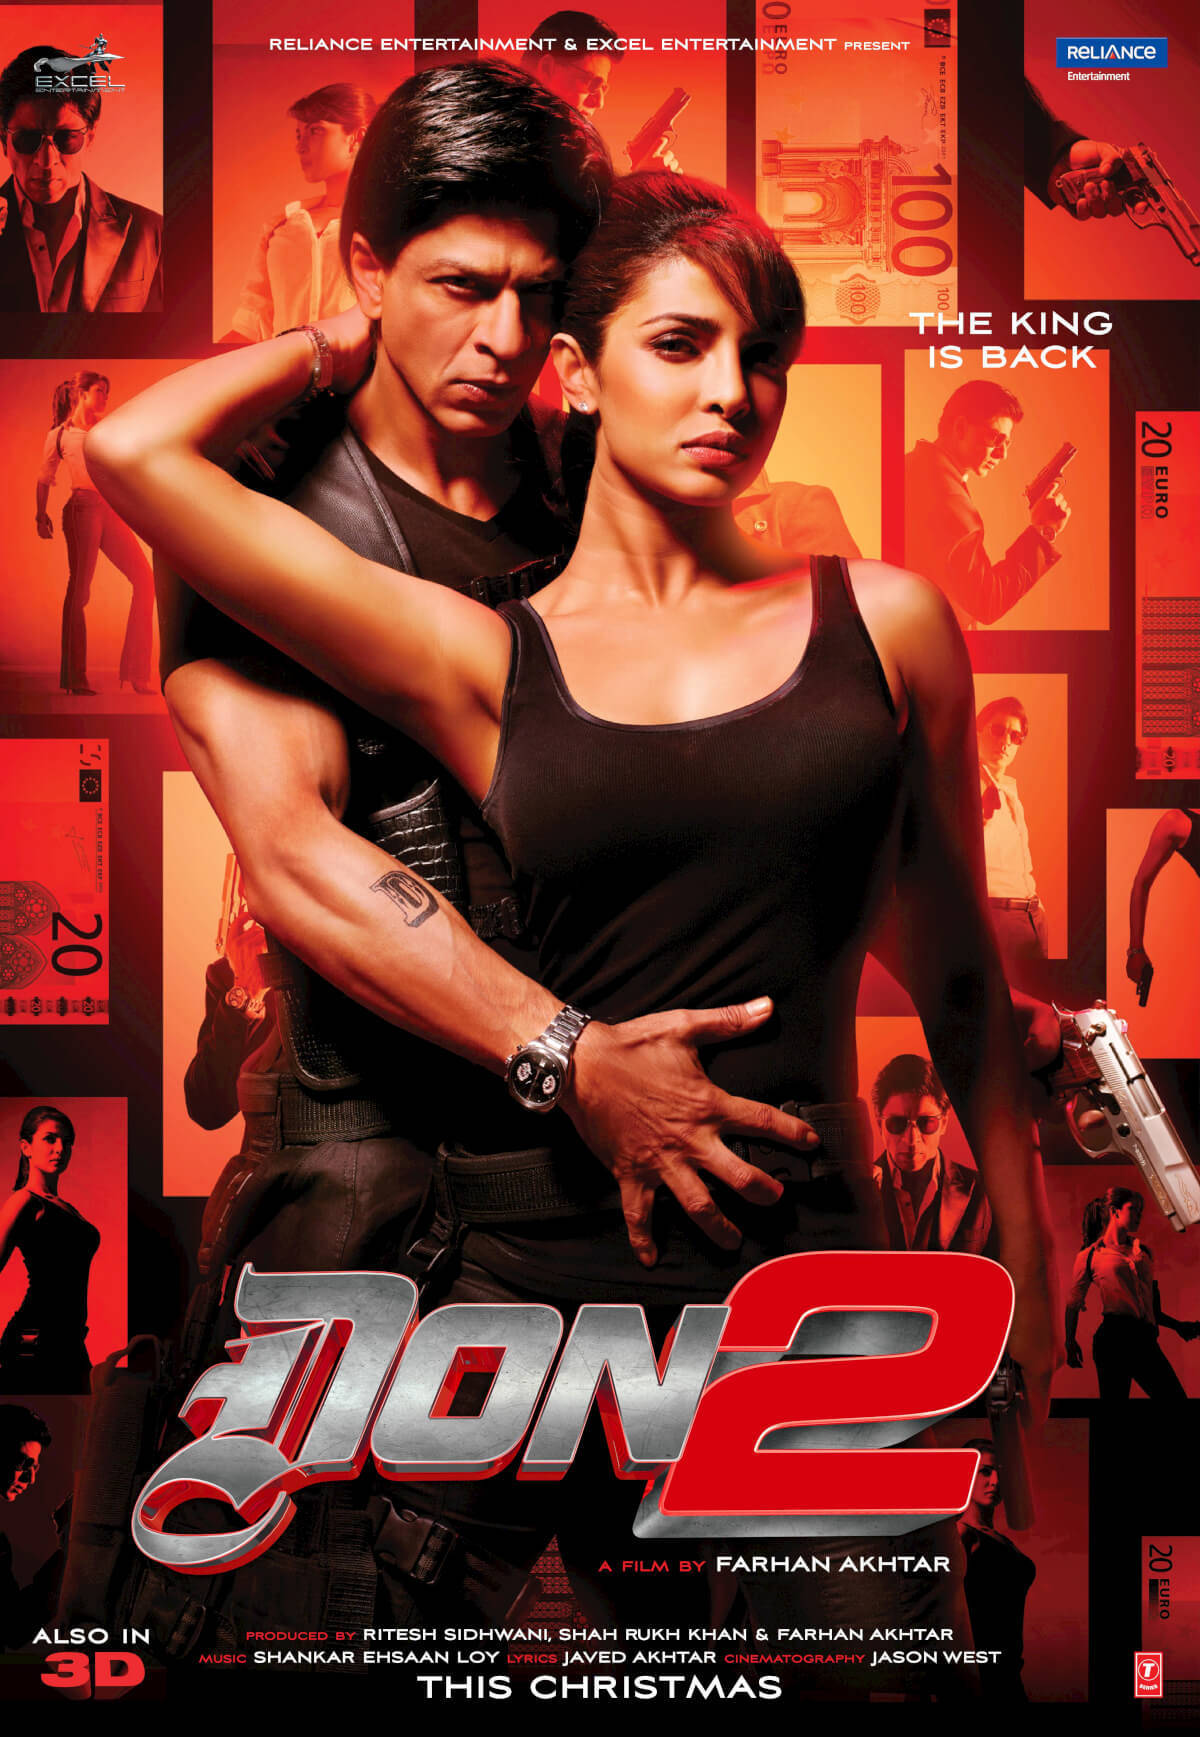 Don 2 - Lifetime Box Office Collection, Budget, Reviews, Cast, etc